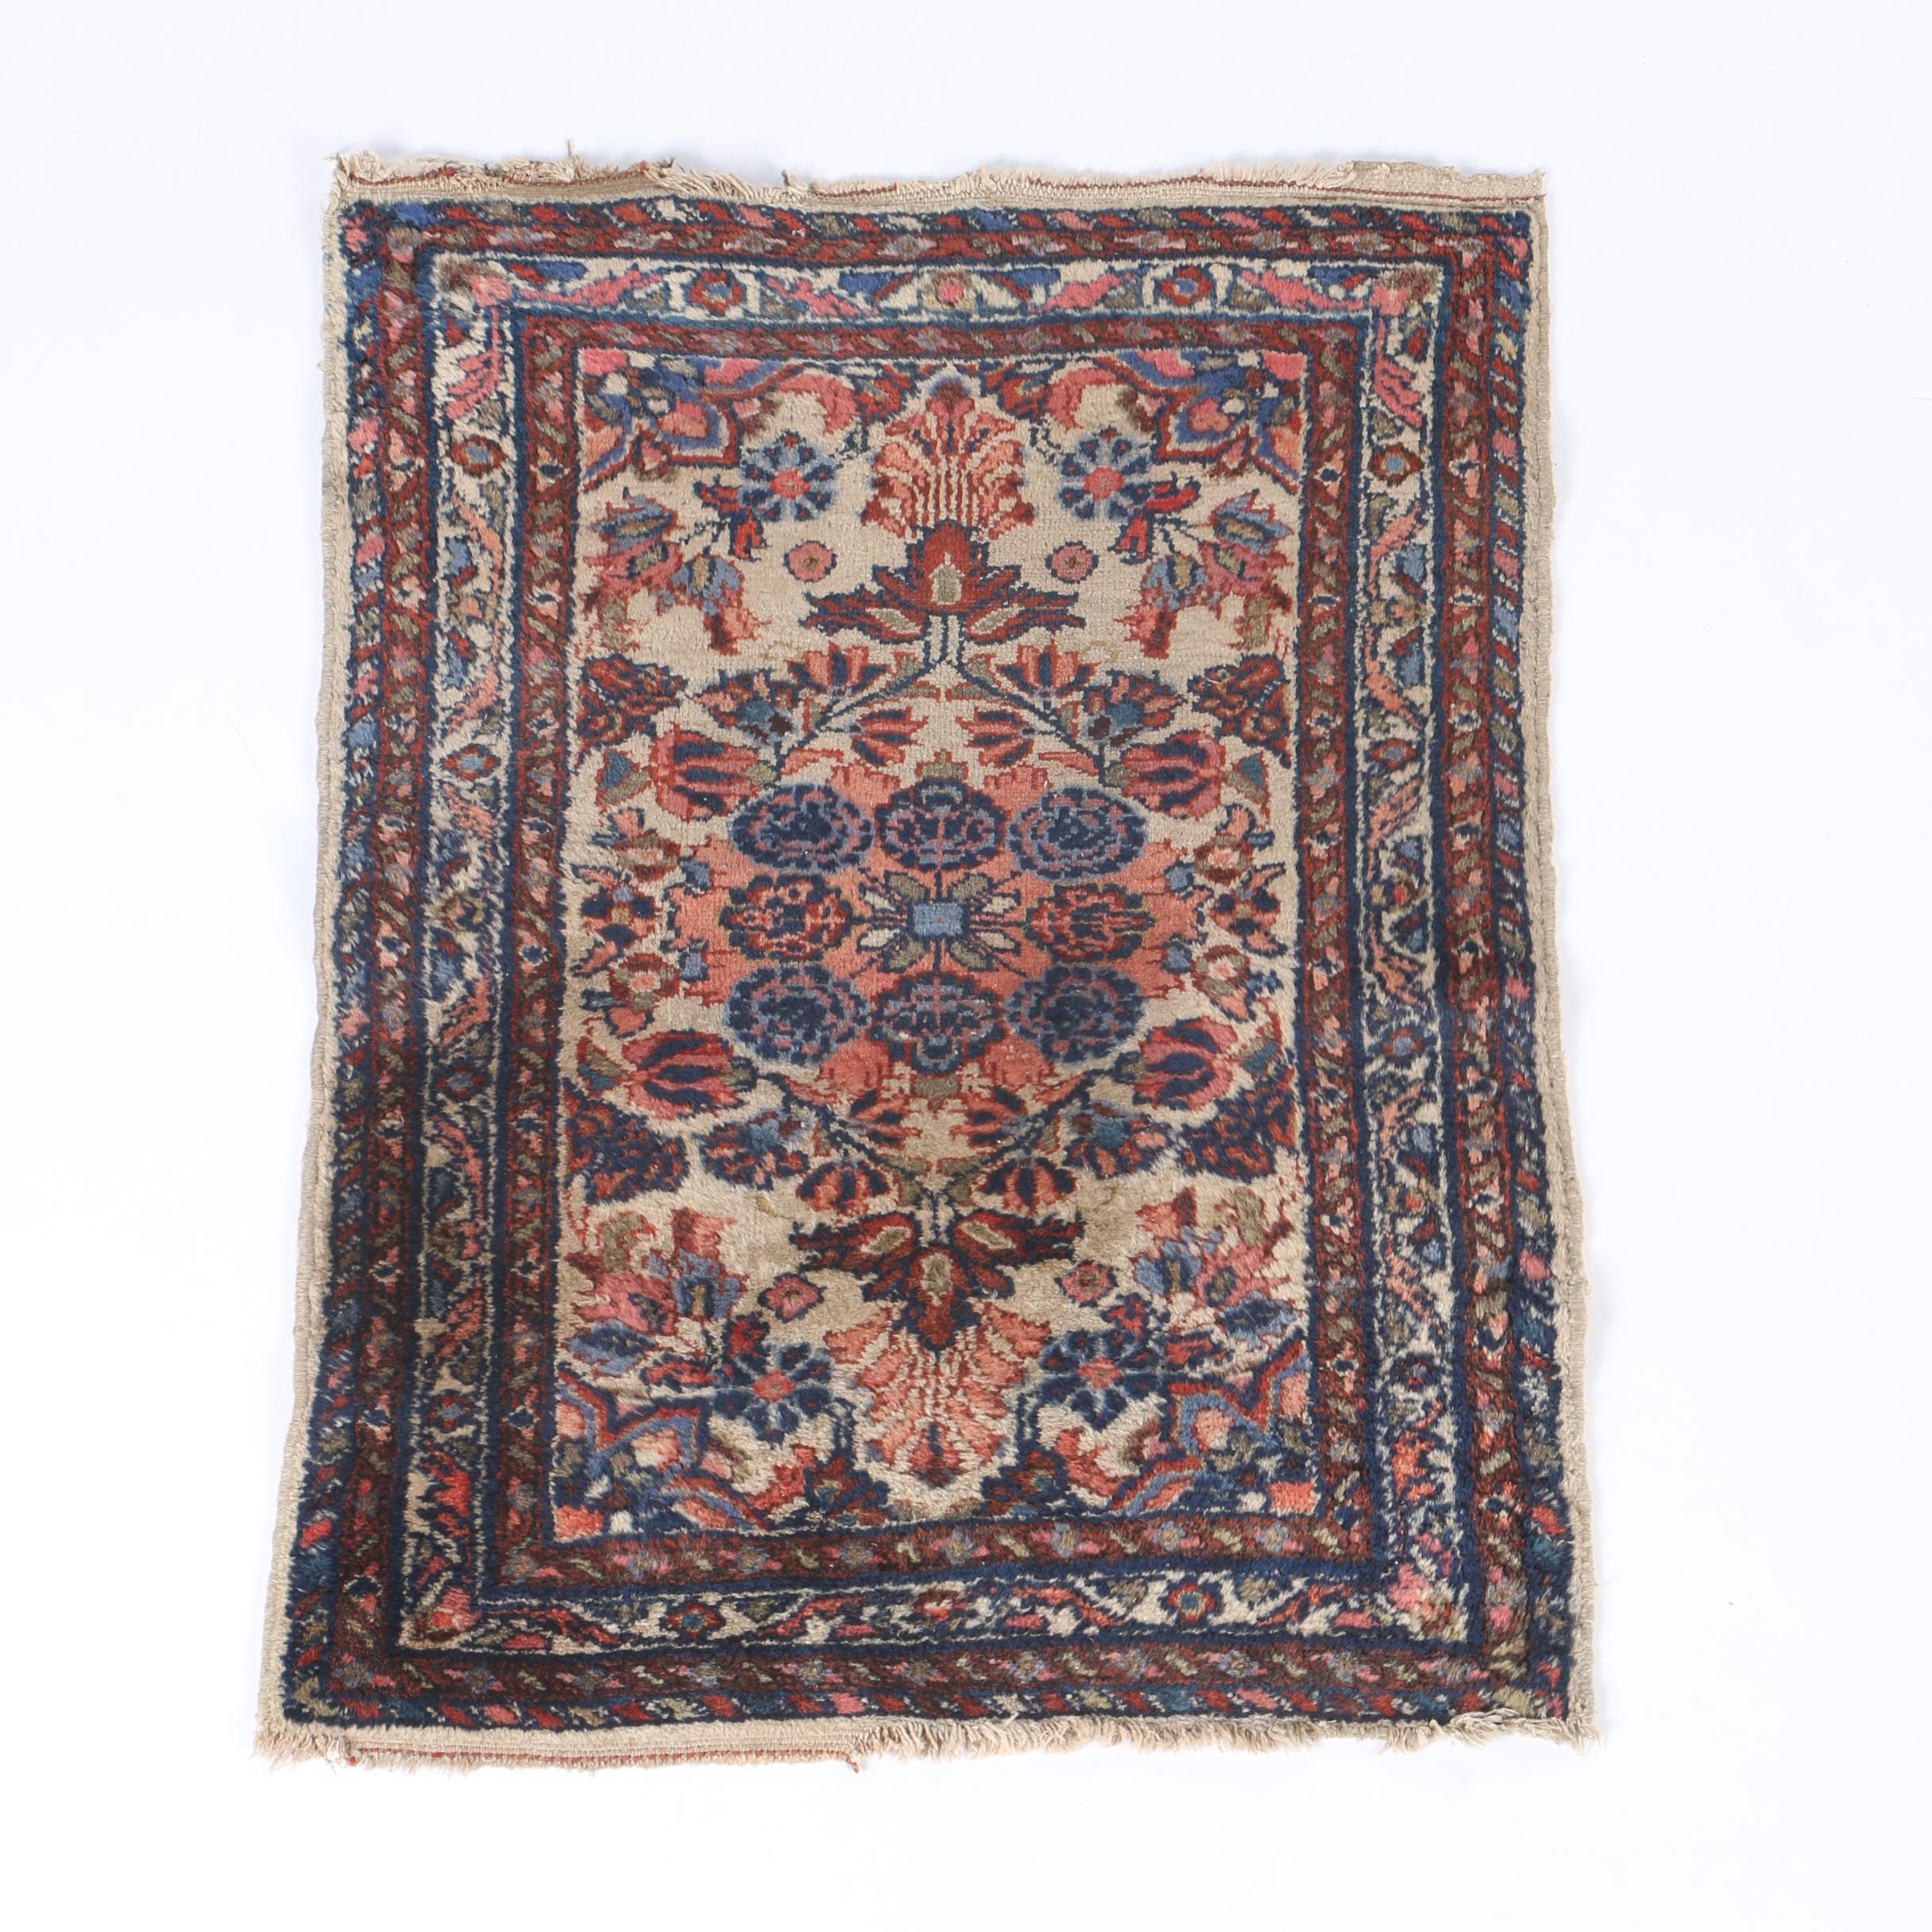 Semi-Antique Hand-Knotted Persian Sarouk Accent Rug